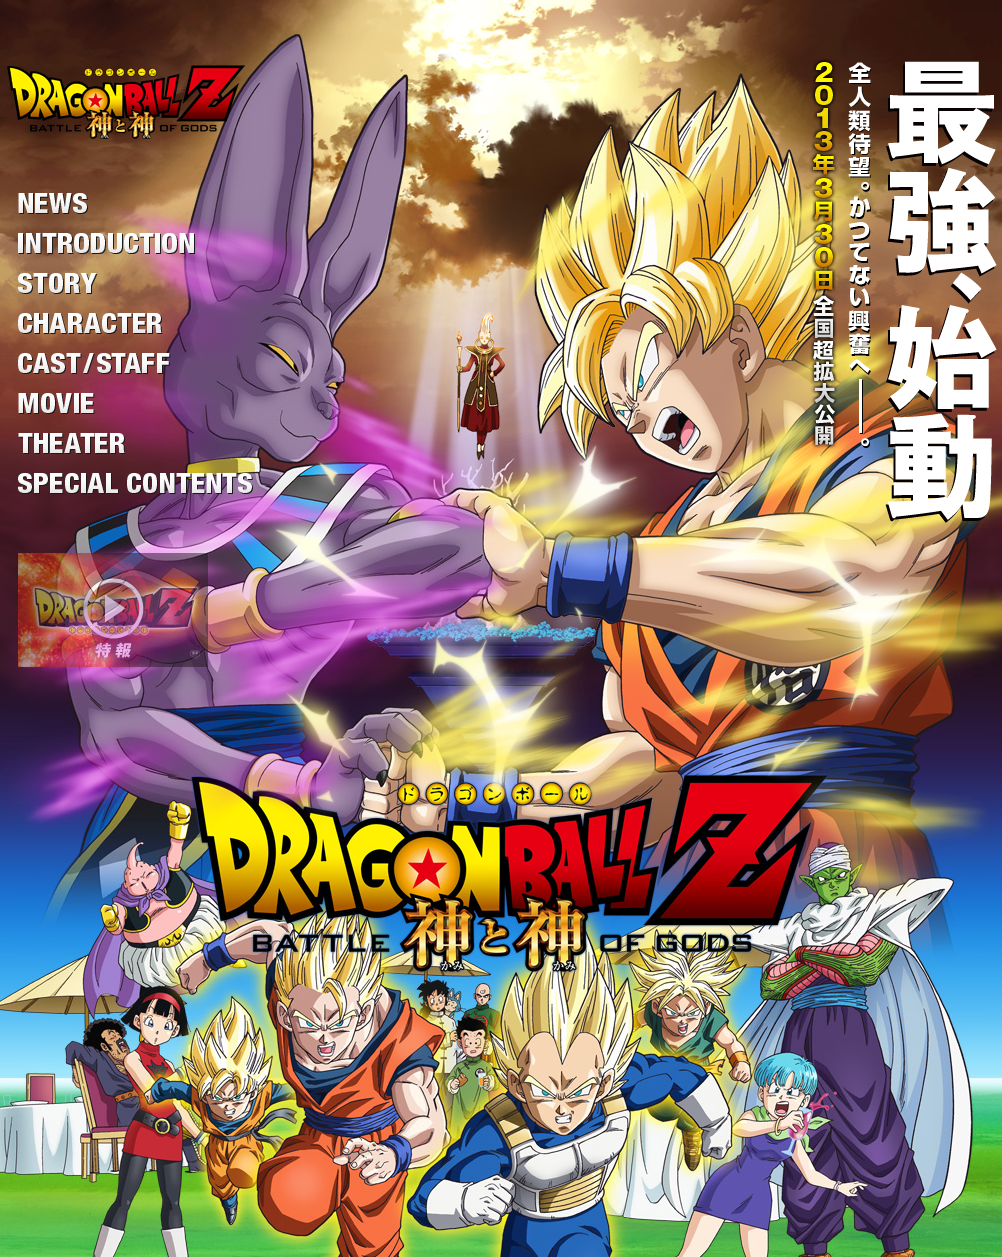 Dragon Ball Z Battle of Gods 2013 poster art and official website